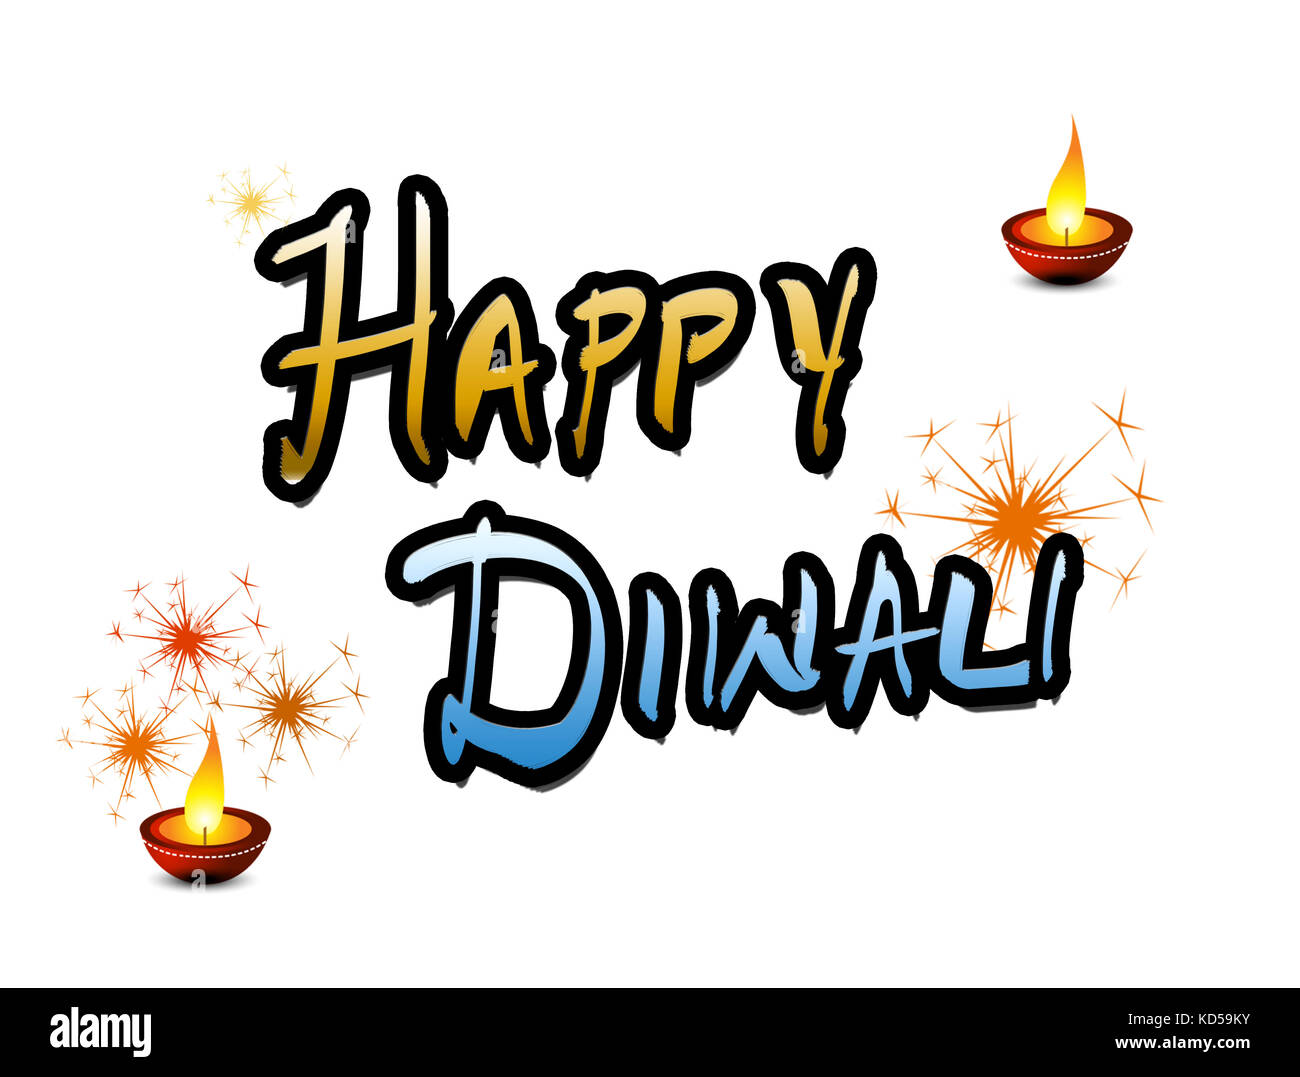 Happy Diwali Wishes and Greetings - Stock Image